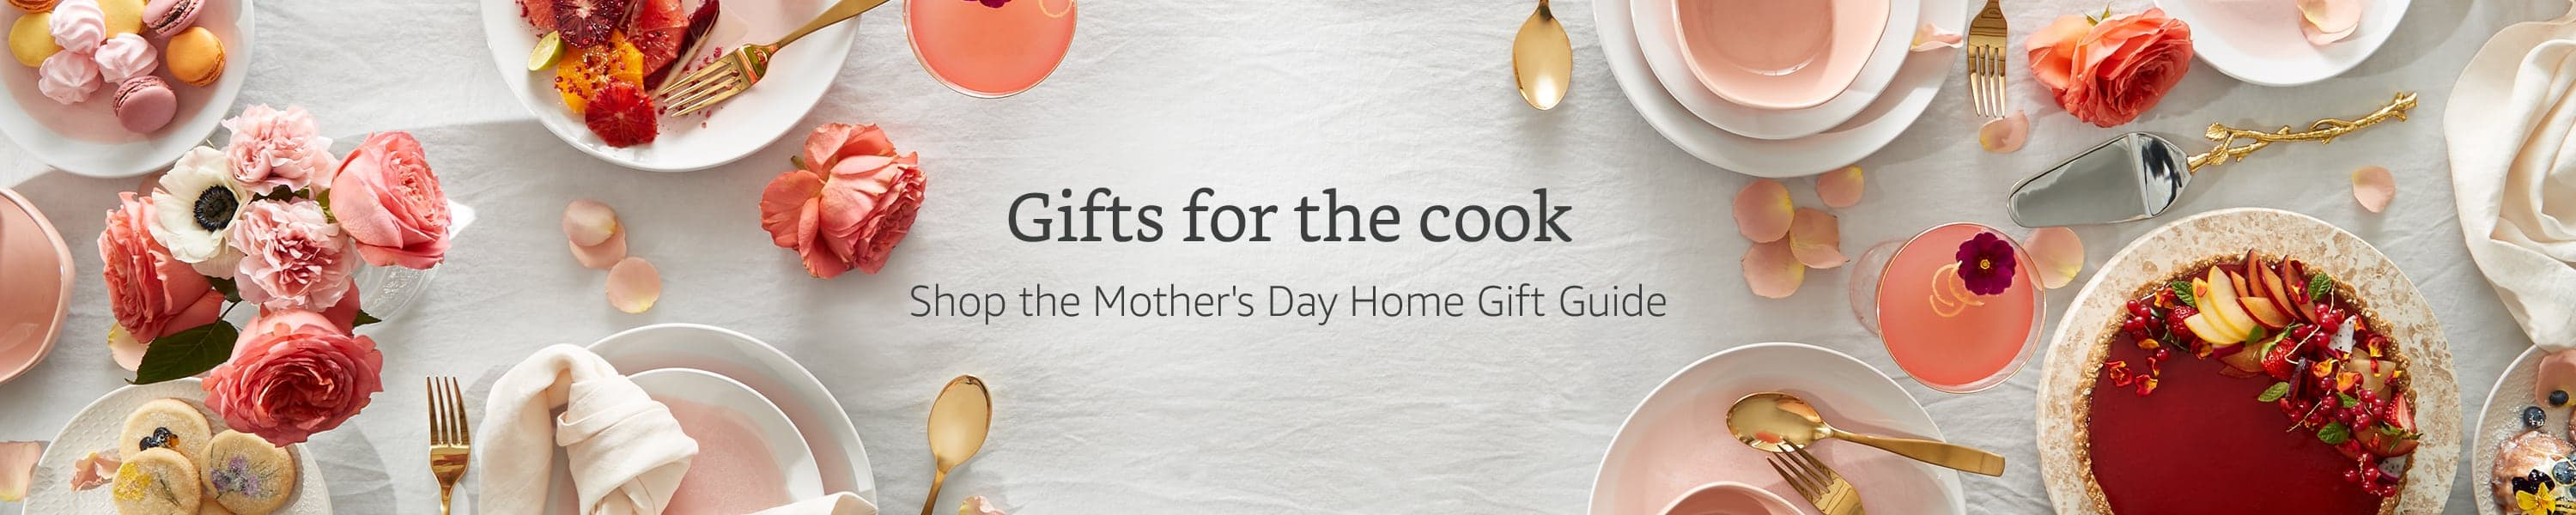 Gifts for the cook. Shop the Mother's Day Home Gift Guide.